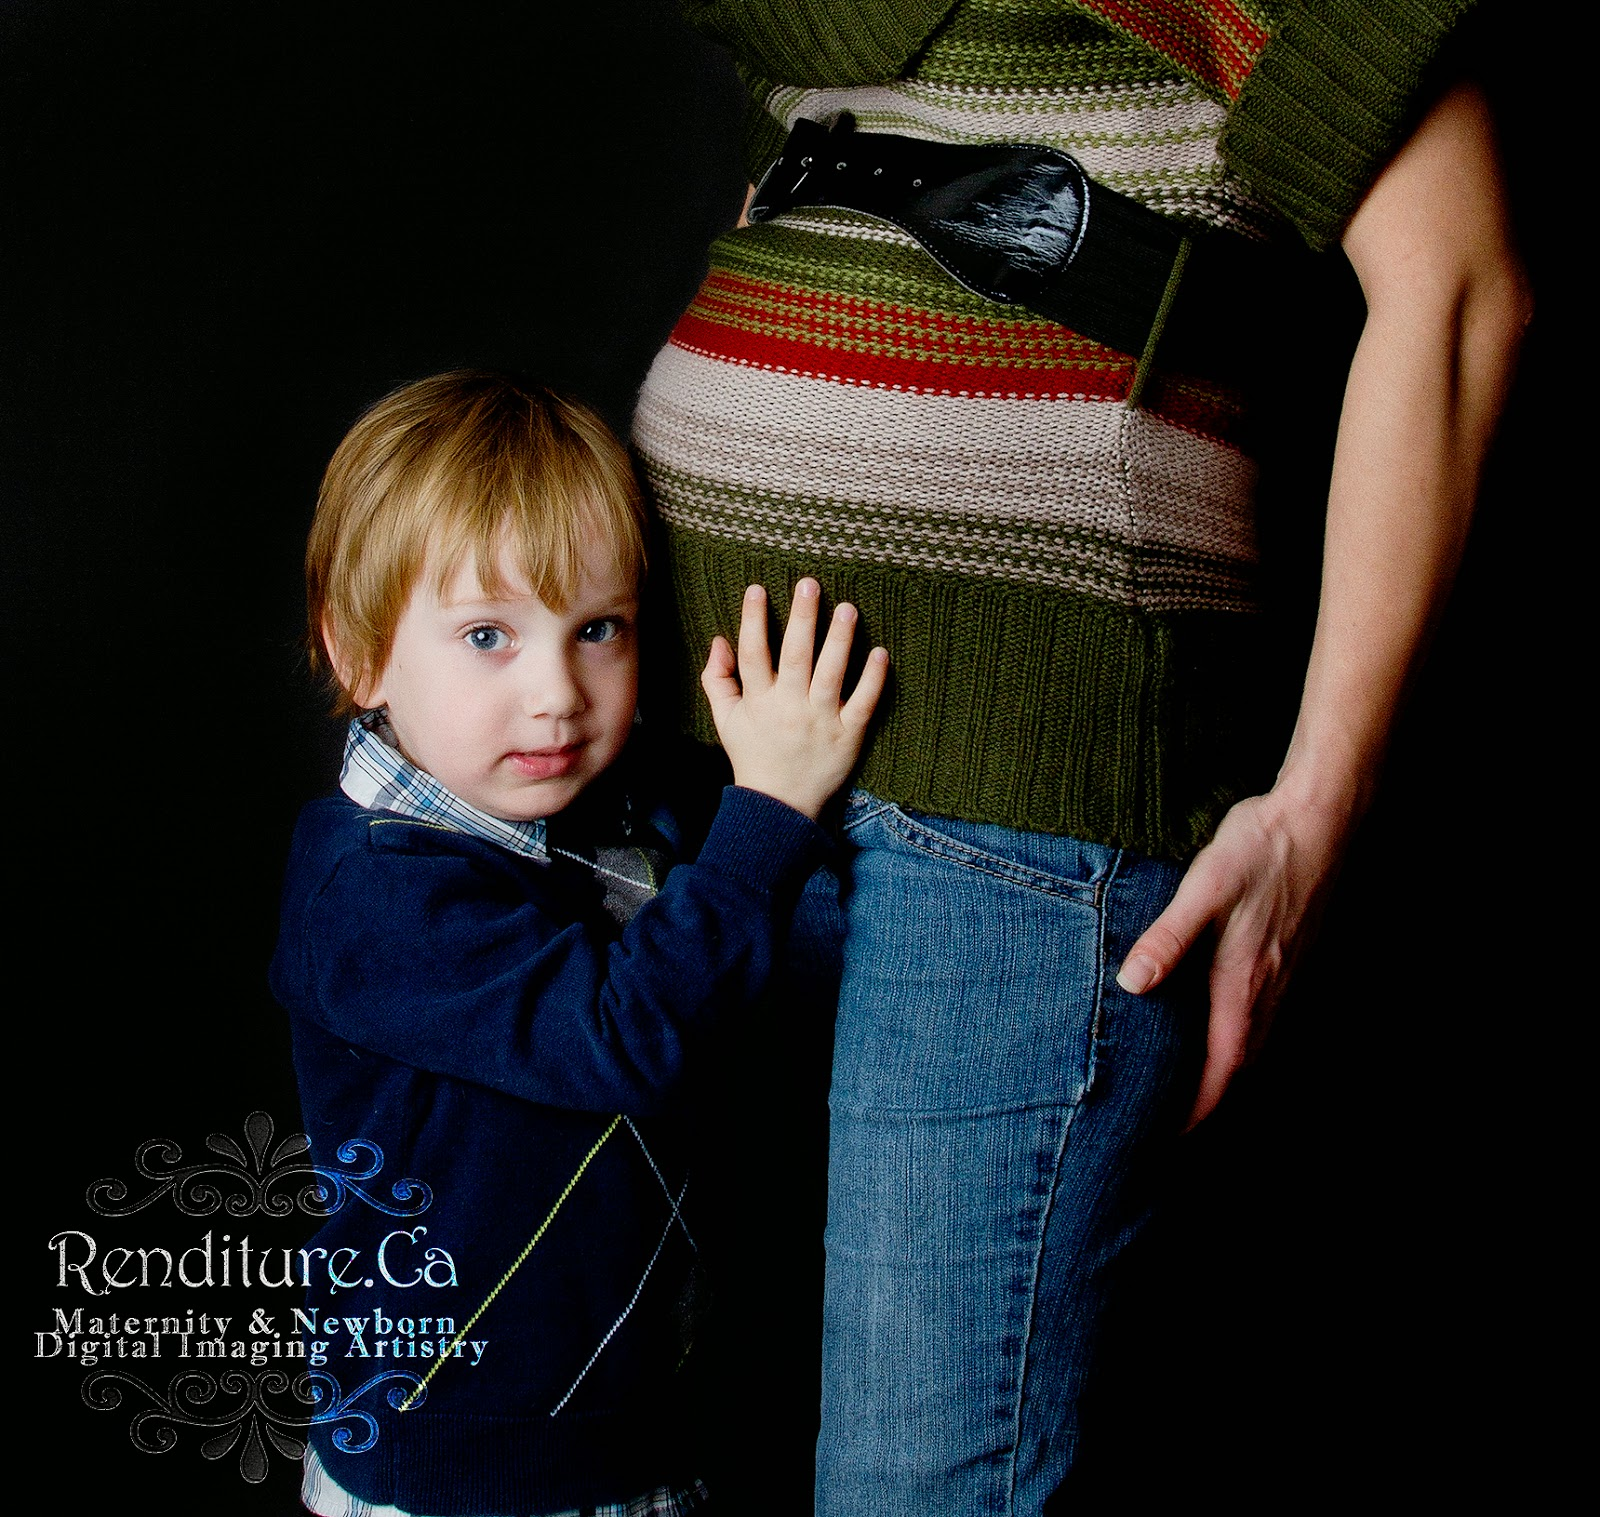 Saskatoon-Newborn-Baby-Photographer-Family-Renditure-Photography-New-Maternity-Pregnant-Pregnancy-Photos-Mother-Saskatchewan-IVF-YXE